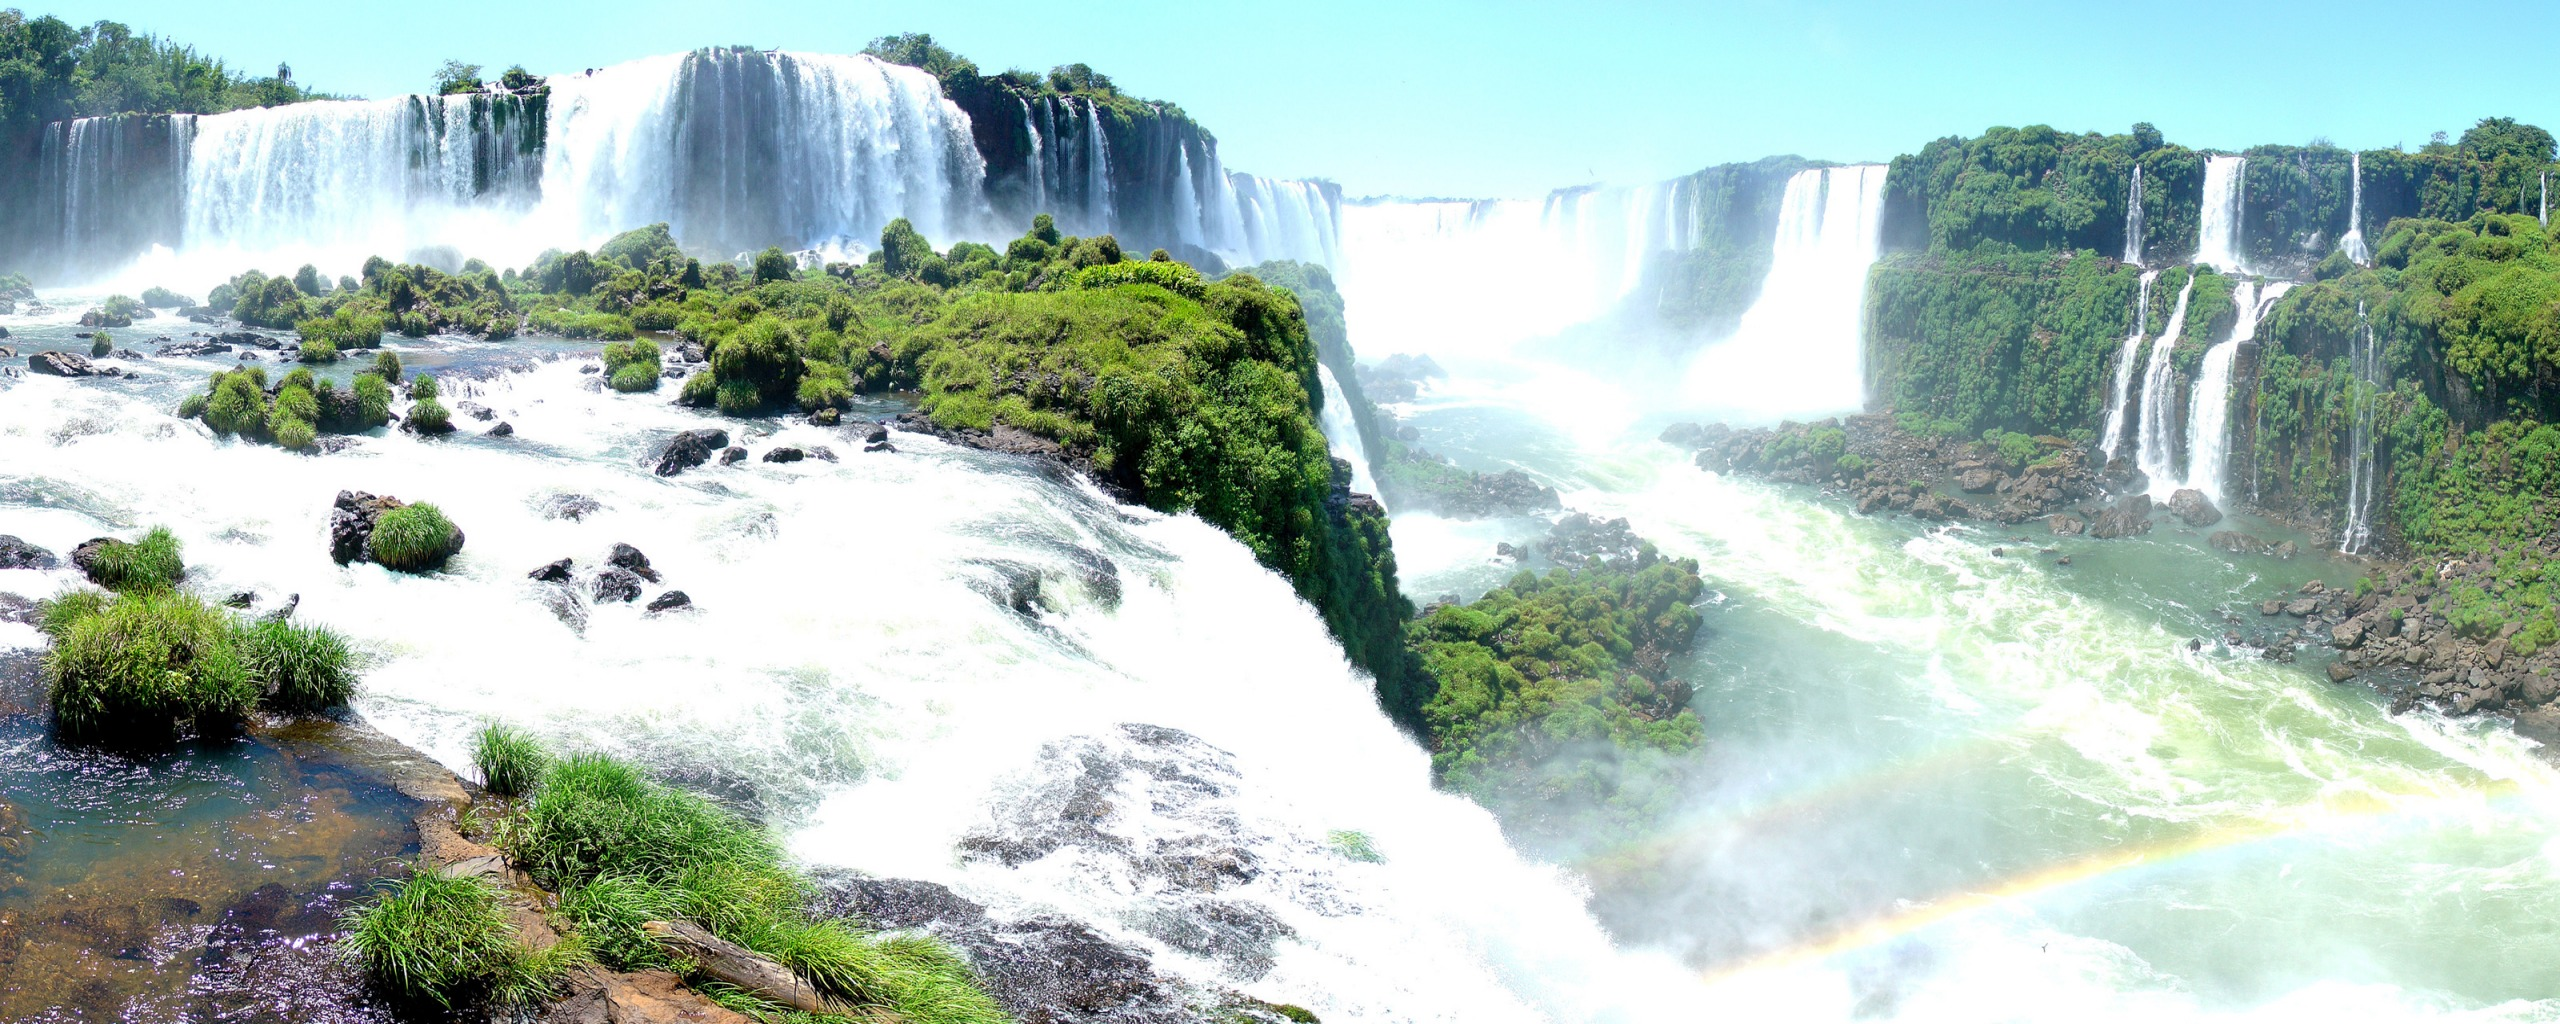 Free Wallpaper Of Natural Scenery: The Widest Falls – Iguacu Falls